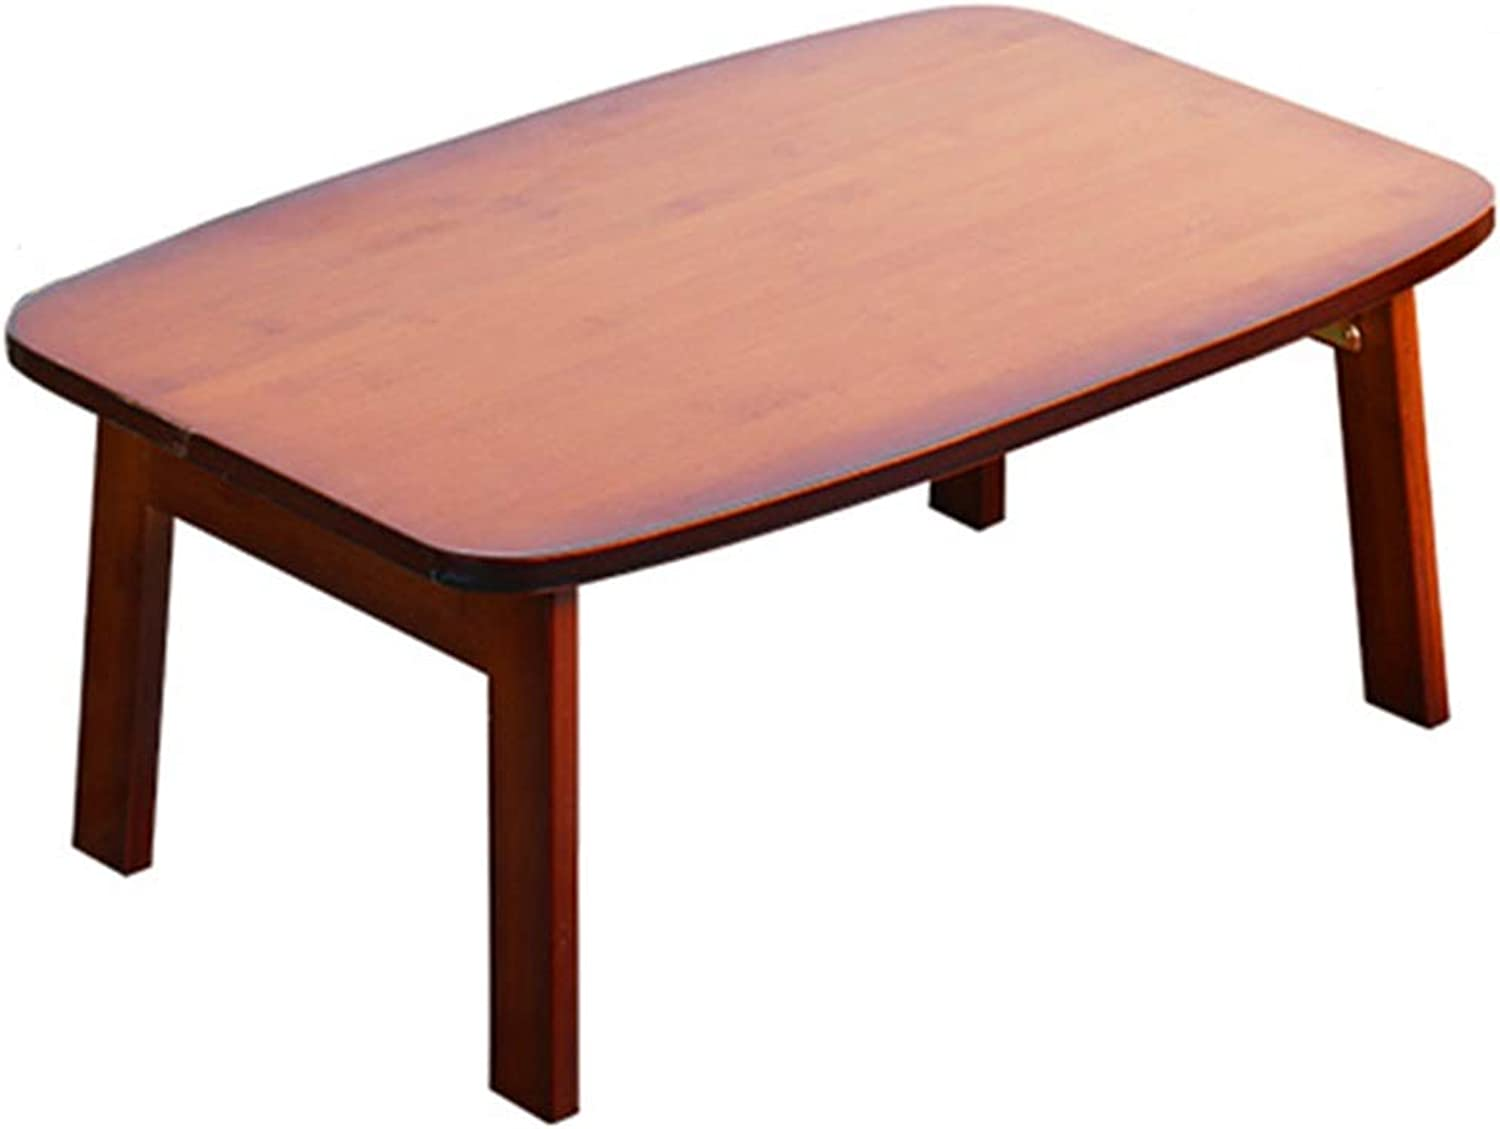 Nesting Tables Bed Table Low Table Tatami Coffee Table Table Home Bamboo Bamboo Window Table Bed Study Table Balcony Low Table Bed Computer Table Foldable Nesting Tables